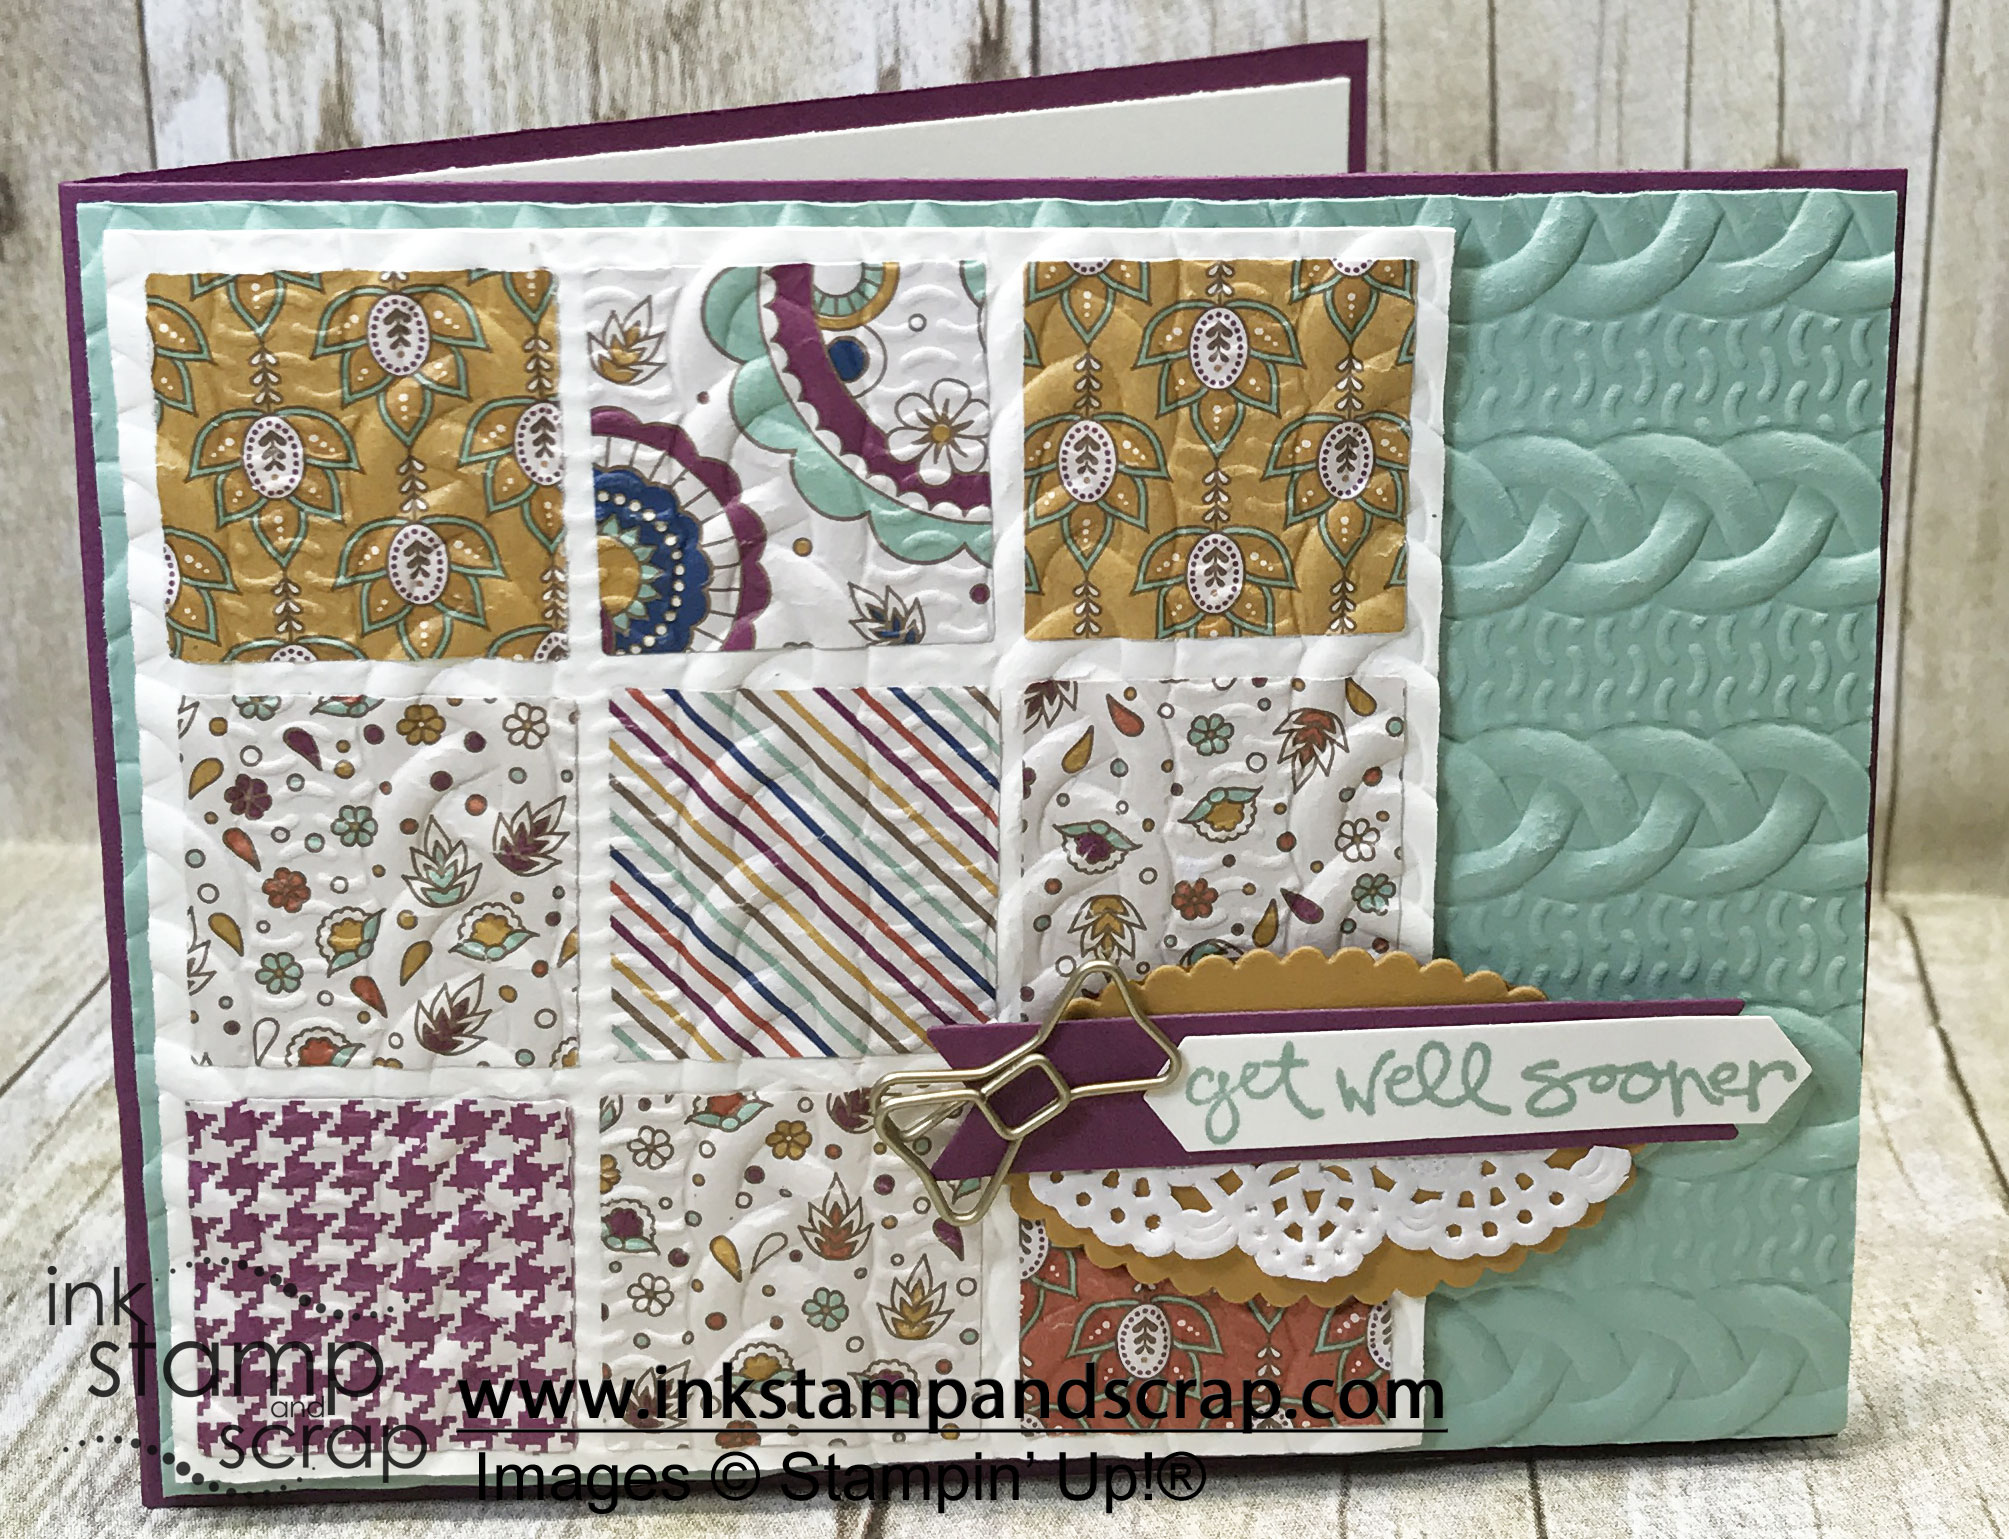 Cable Knit Sweater Folder from Stampin